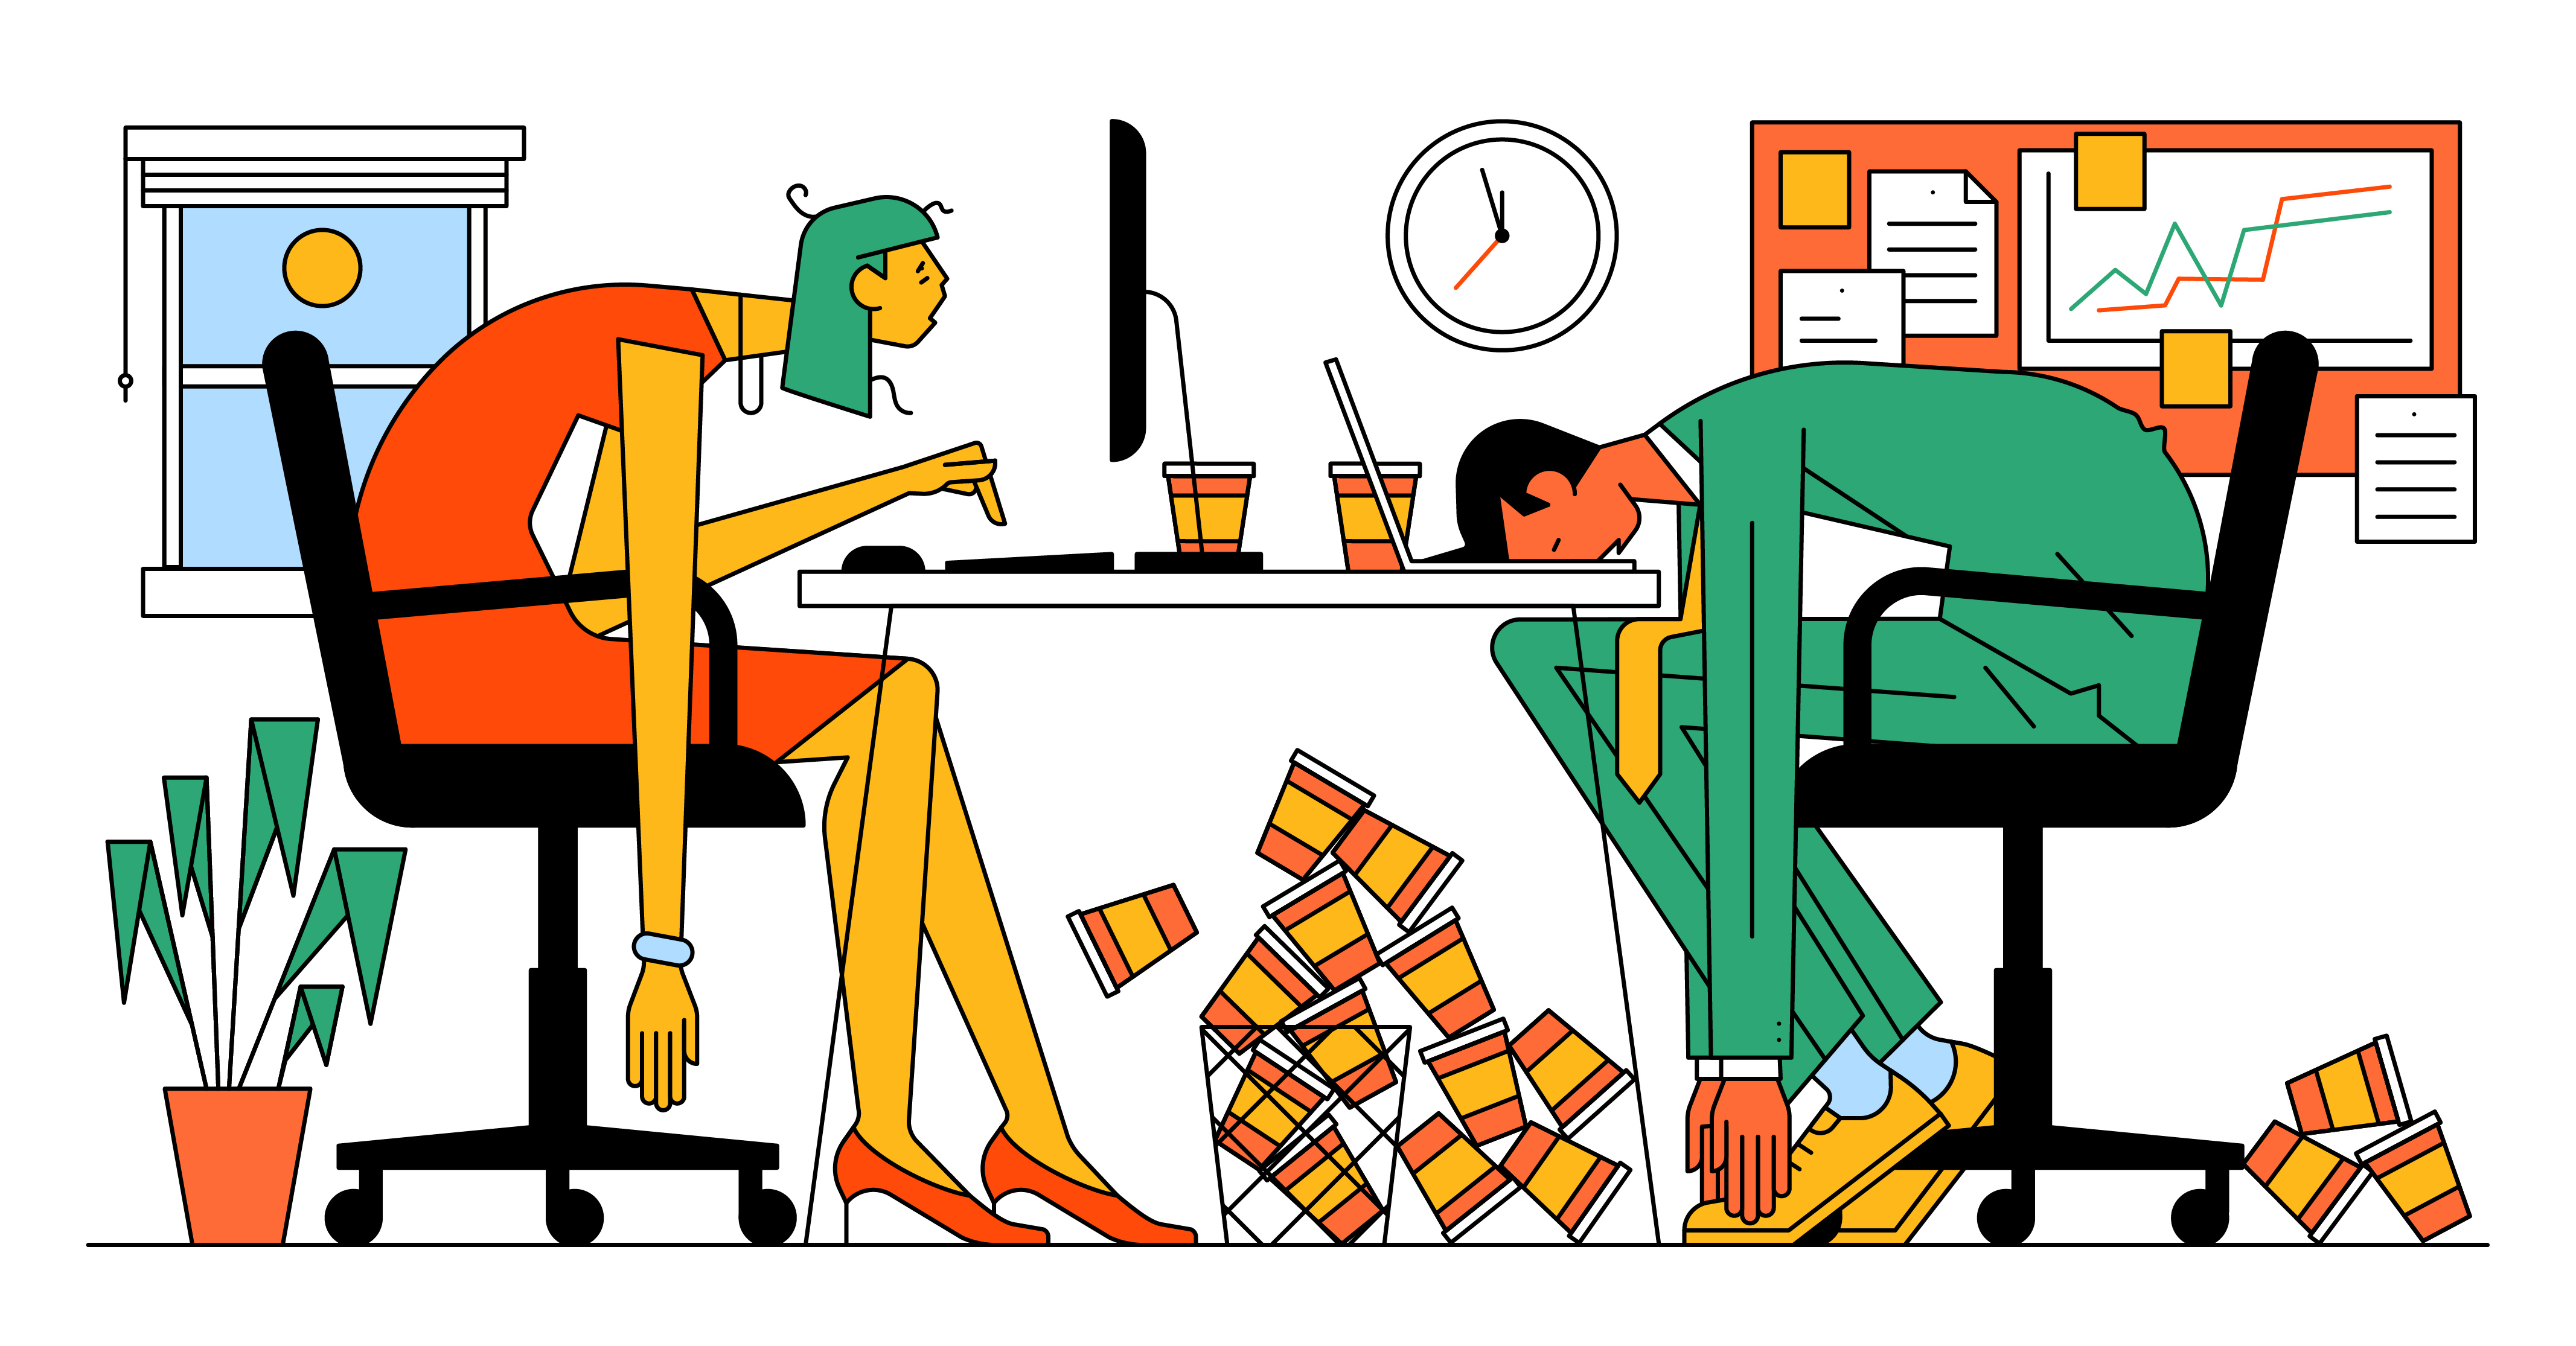 Could this Spanish tradition revolutionize work in Asia?